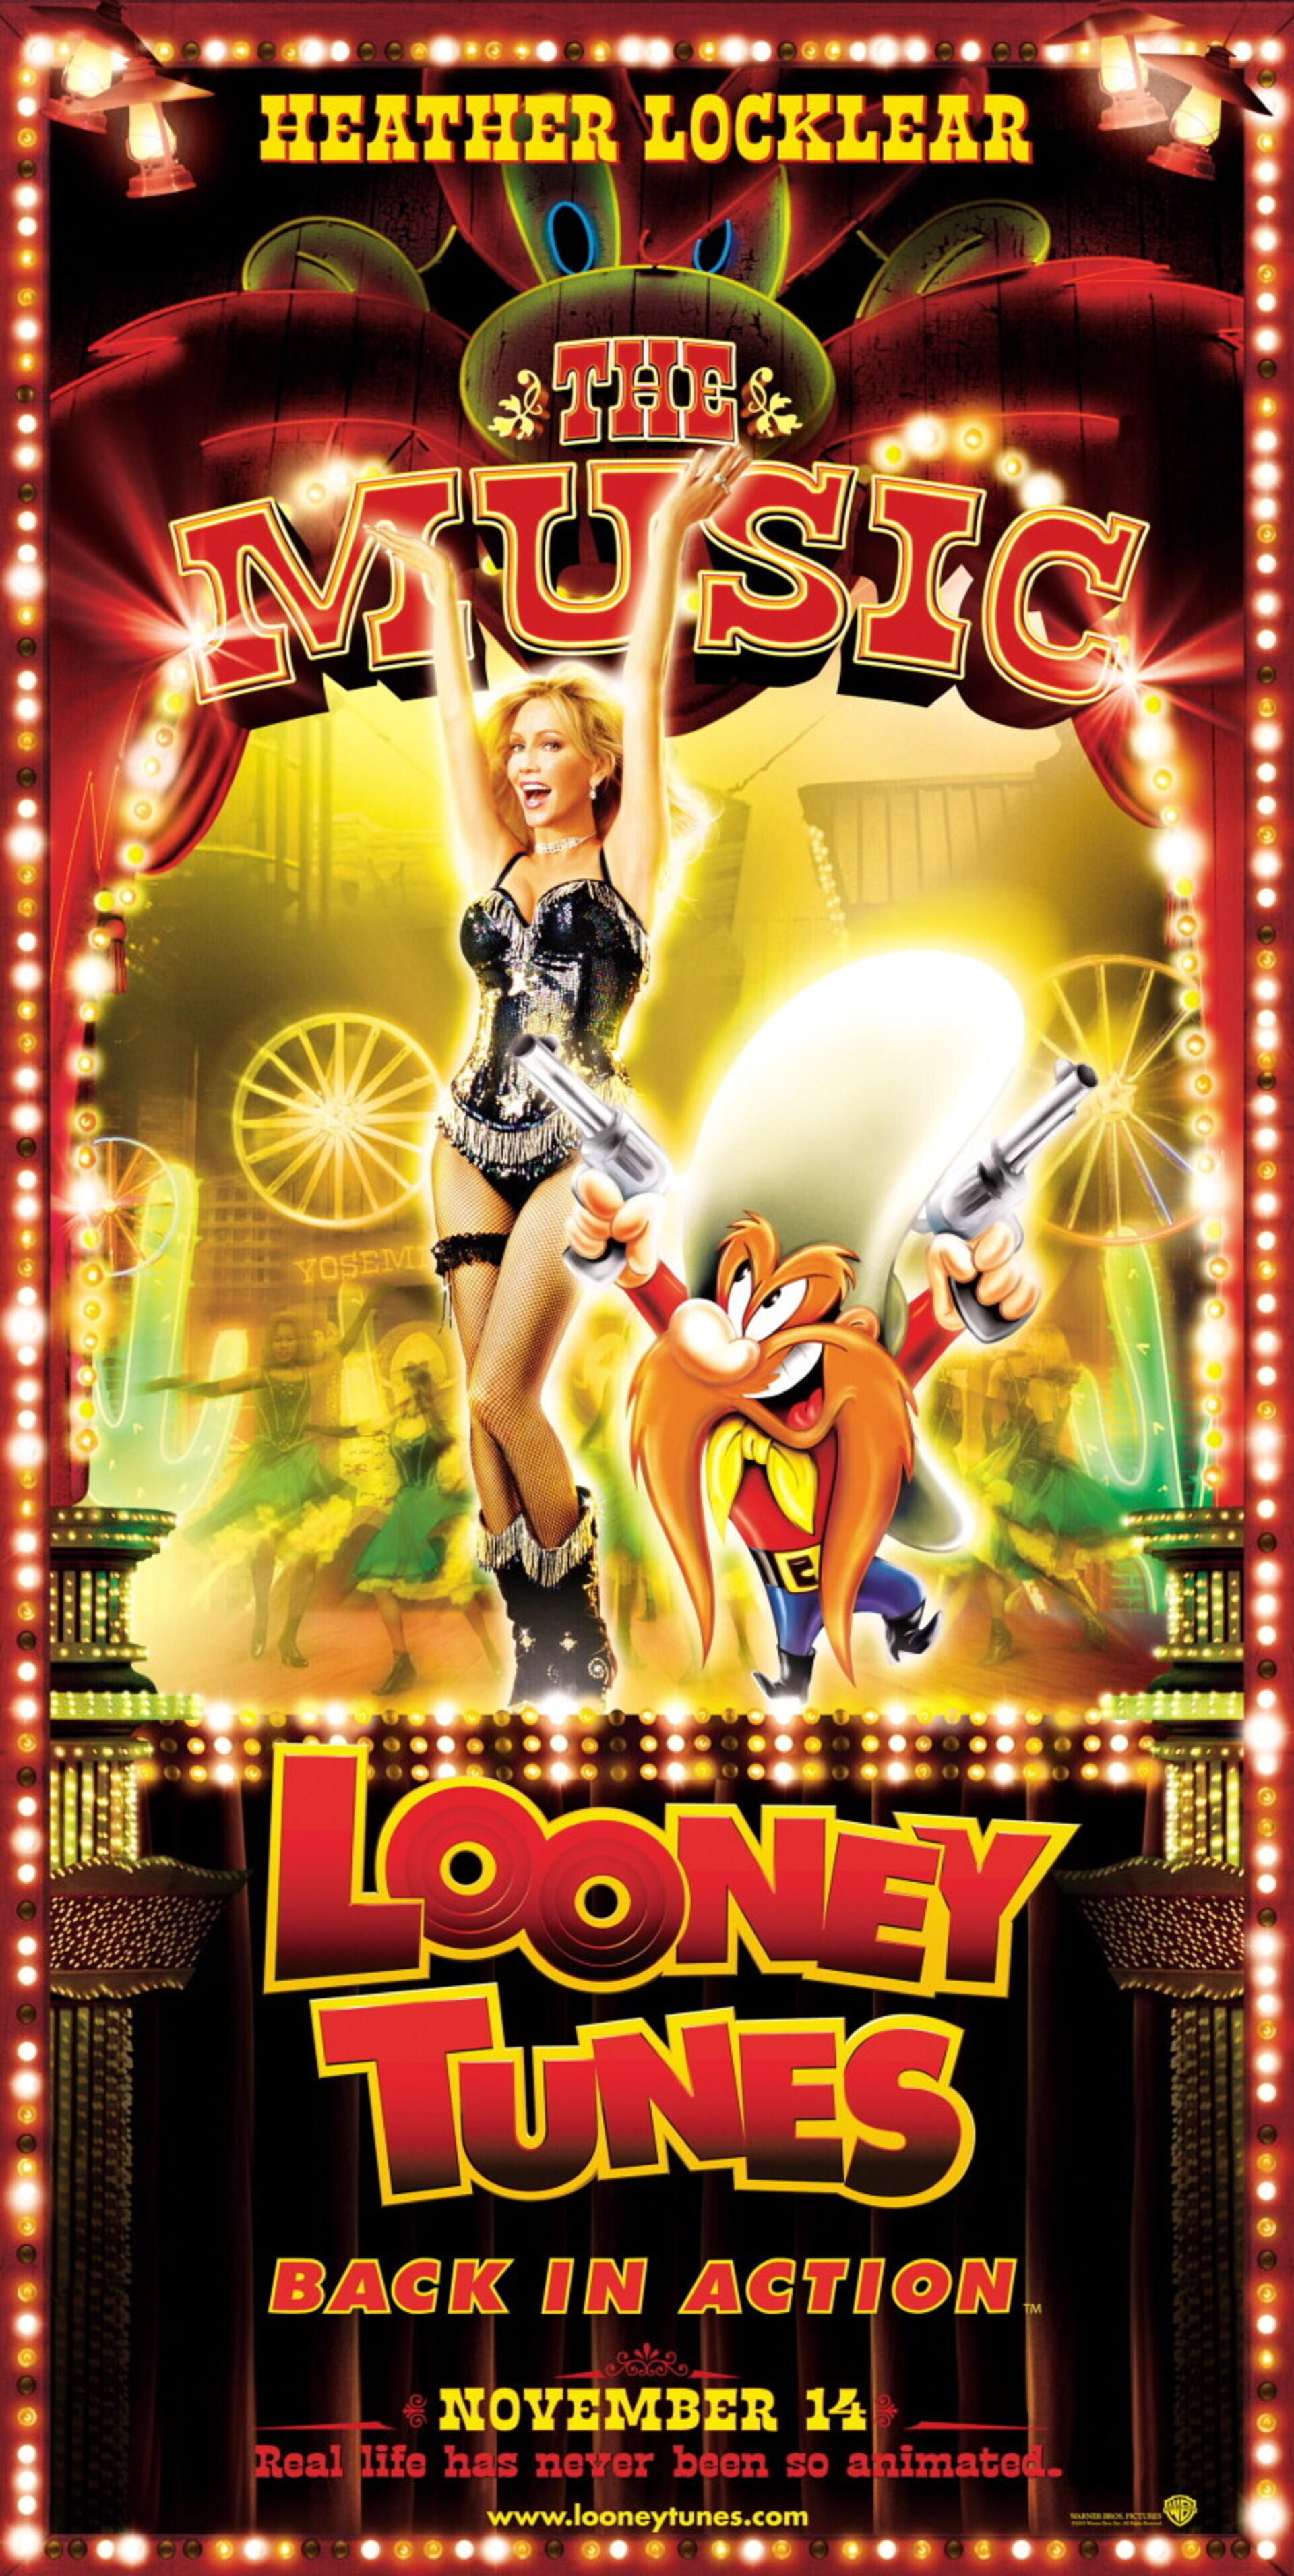 Looney Tunes: Back in Action - Poster 2